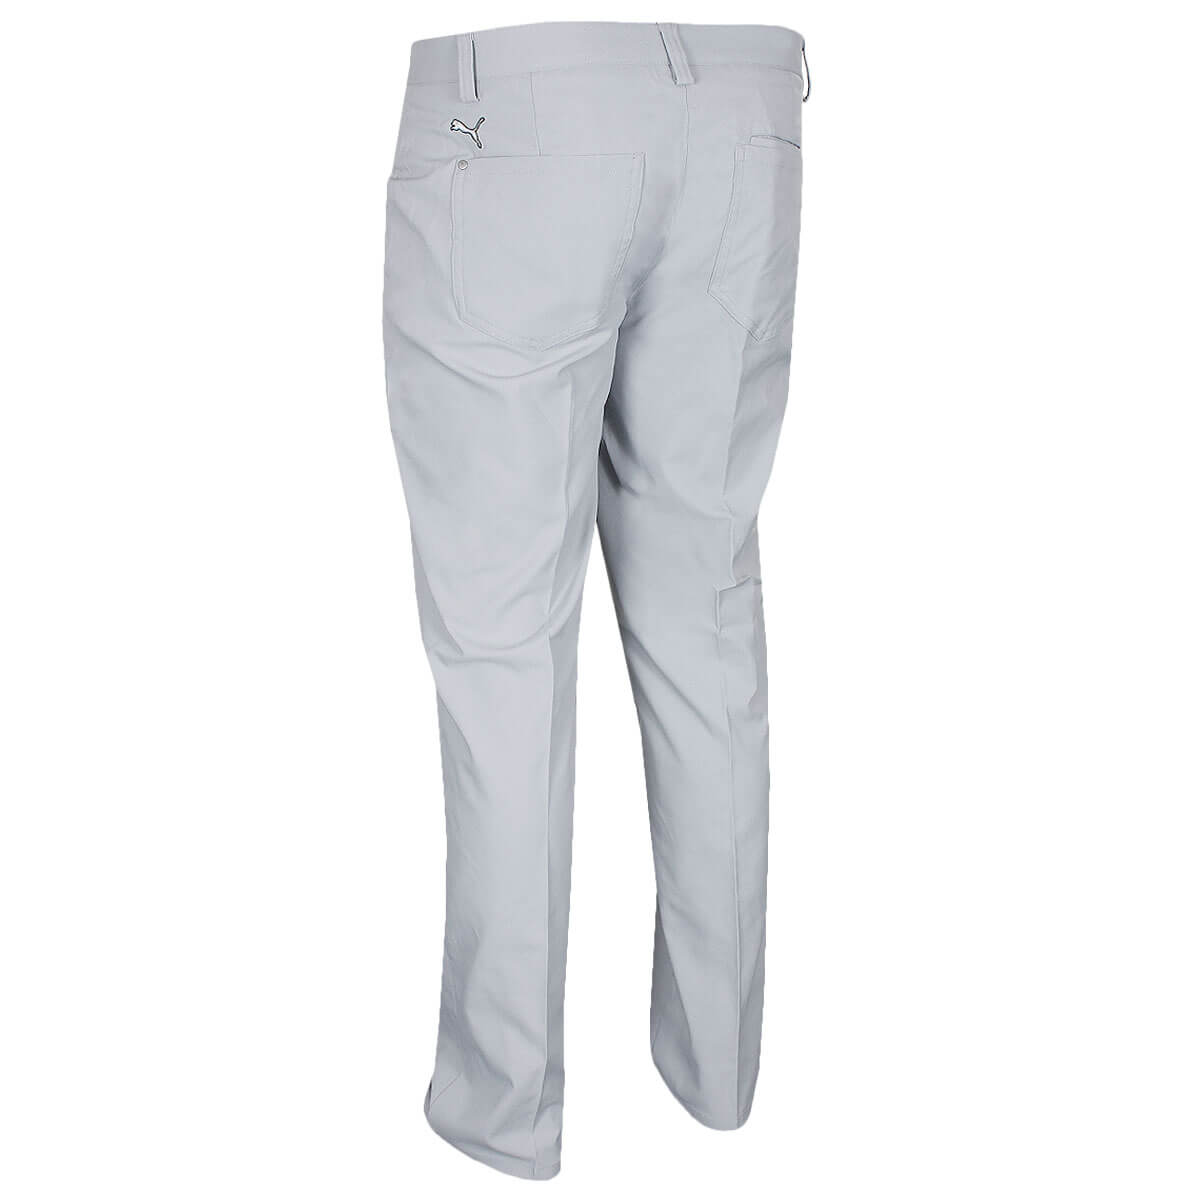 Puma-Golf-Mens-6-Pocket-Pant-DryCELL-Performance-Stretch-Trousers-47-OFF-RRP thumbnail 15